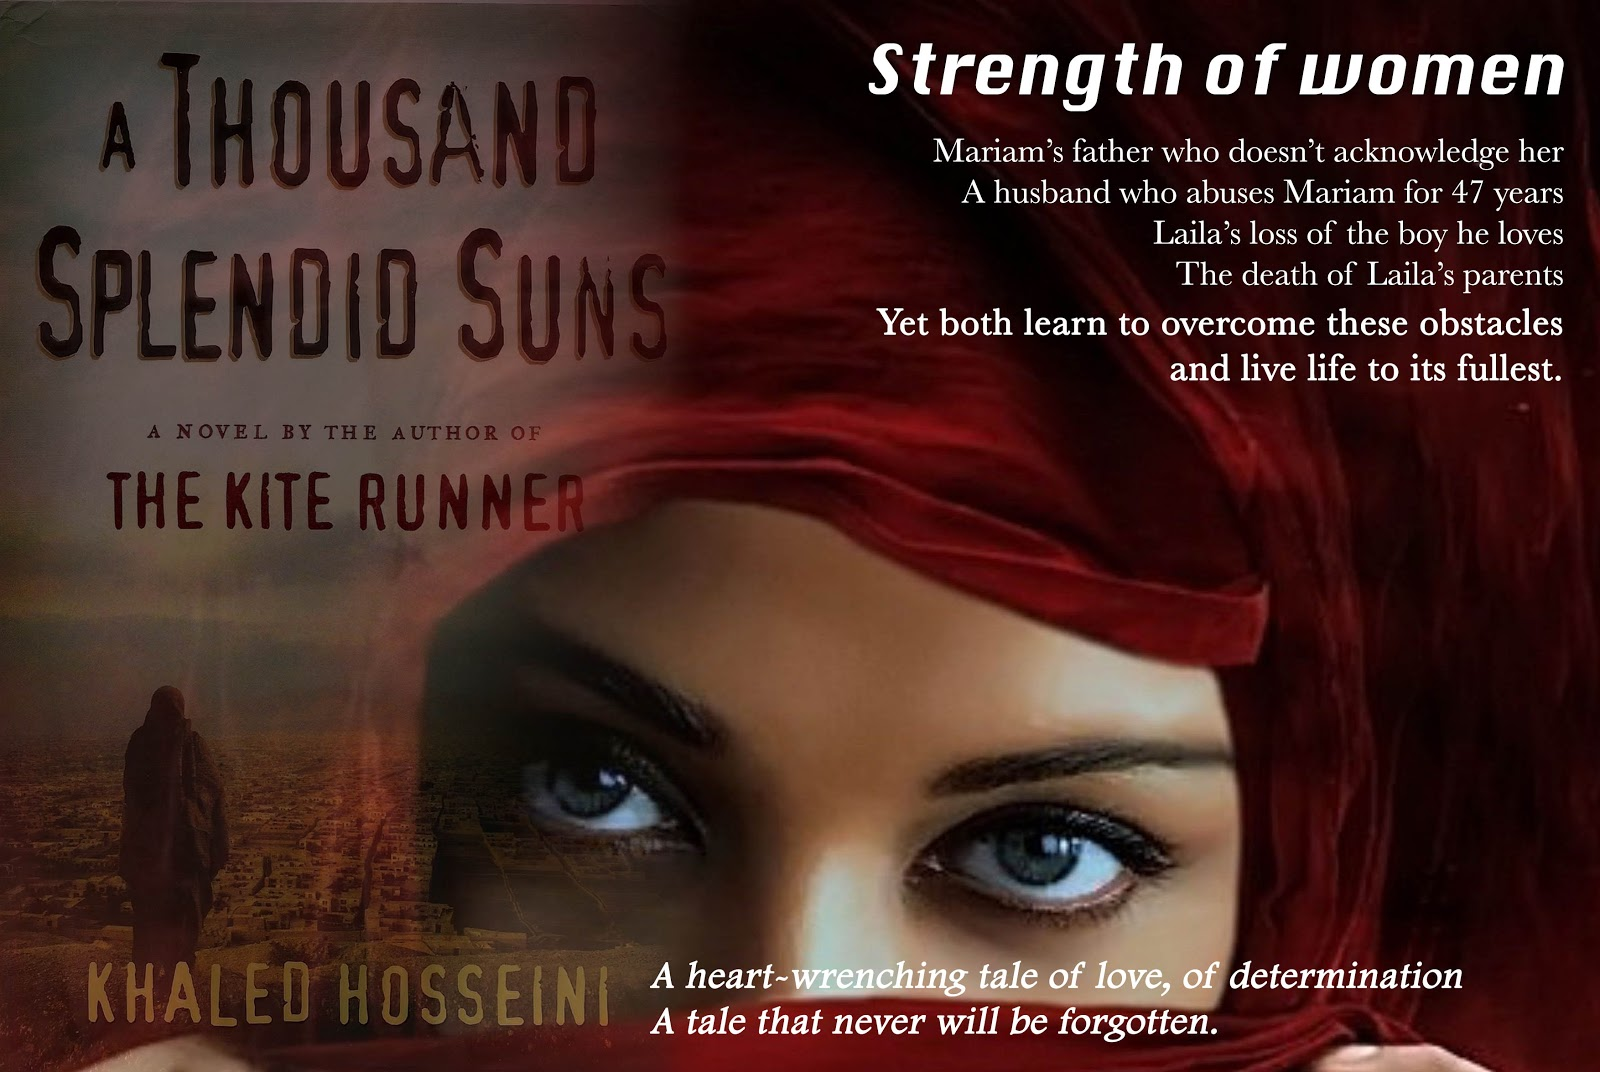 a comparison of the movie osama and the novel a thousand splendid suns Find helpful customer reviews and review ratings for a thousand splendid suns at amazon the novel with a stacked epilogue movie osama a thousand splendid.